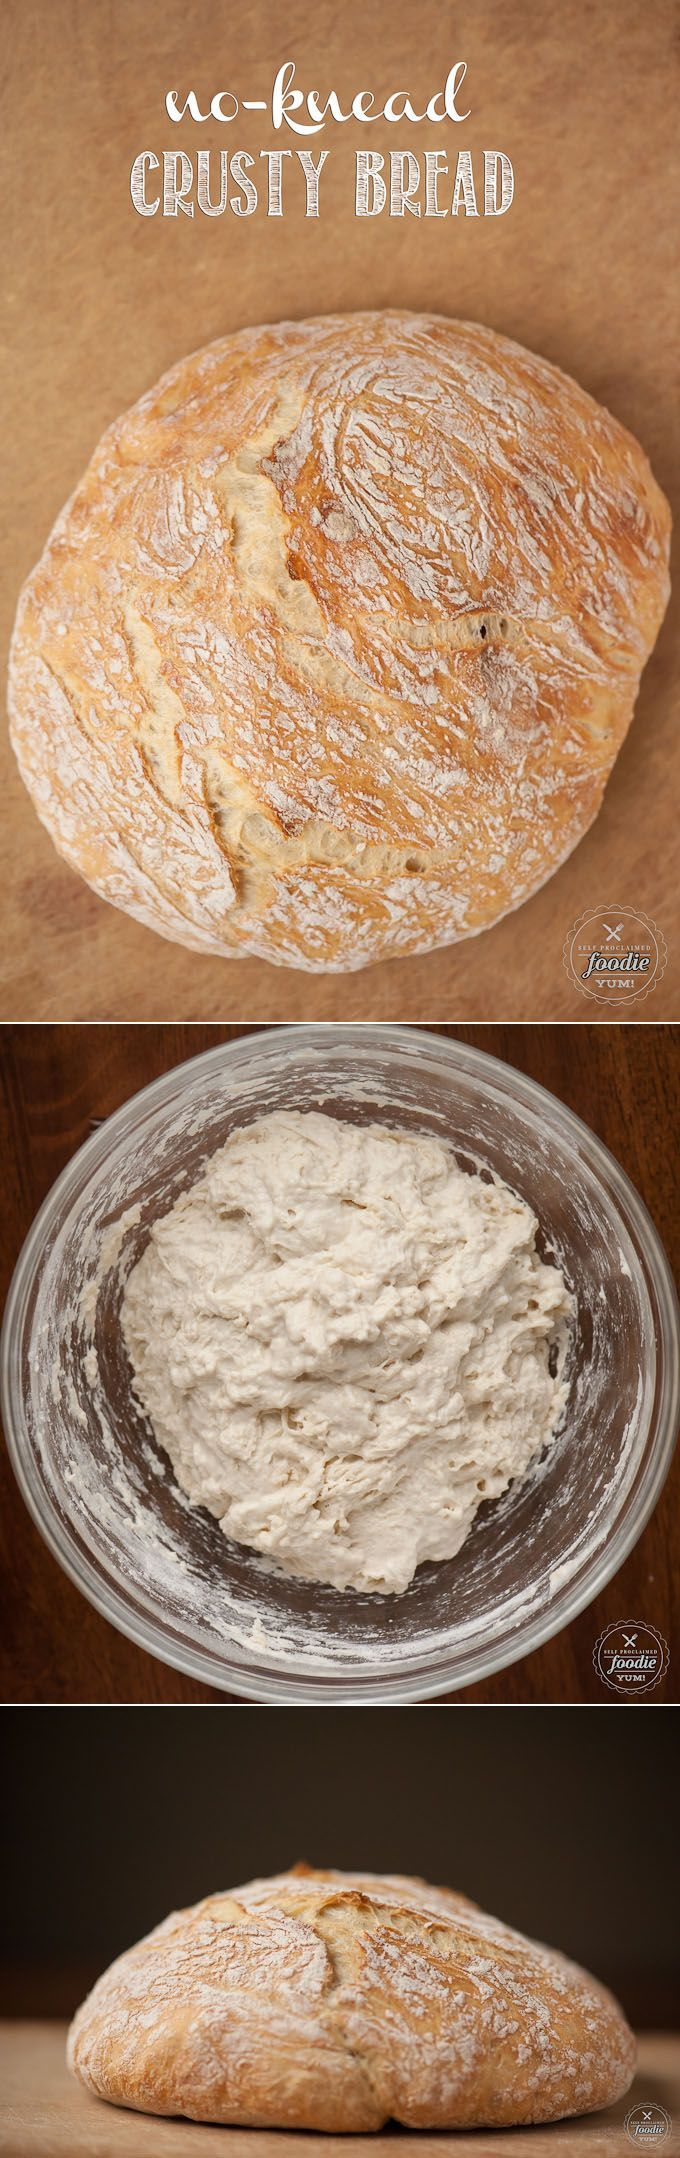 No bread machine or stand mixer needed for this chewy No-Knead Crusty Bread. All you need to make this easy recipe is time and a cast iron dutch oven. #bread #homemadebread #dutchoven